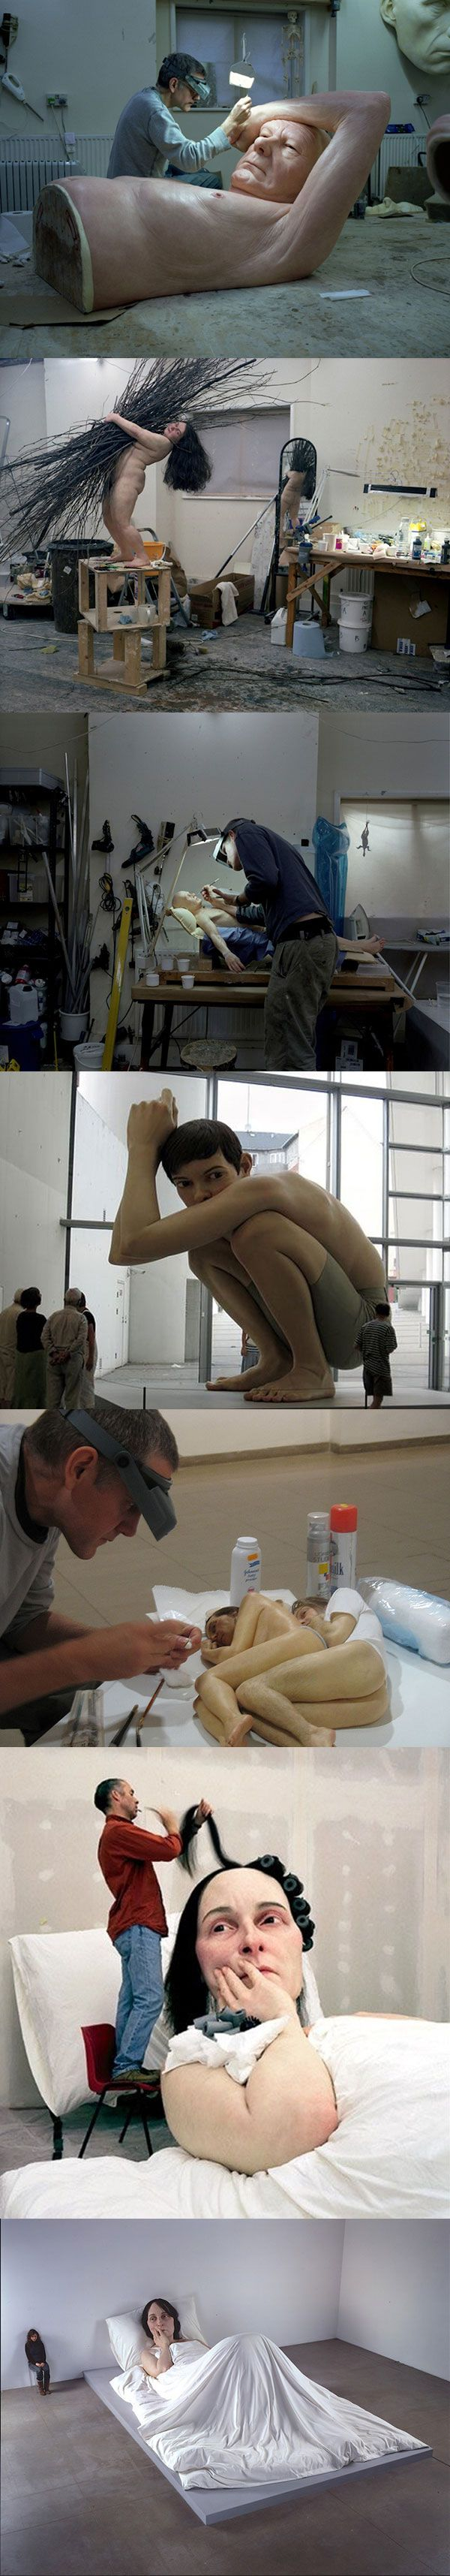 Ultra realistic human sculptures by Ron Mueck but non-standard scales. I'm torn between admiration and a strange feeling when I look at the photos.